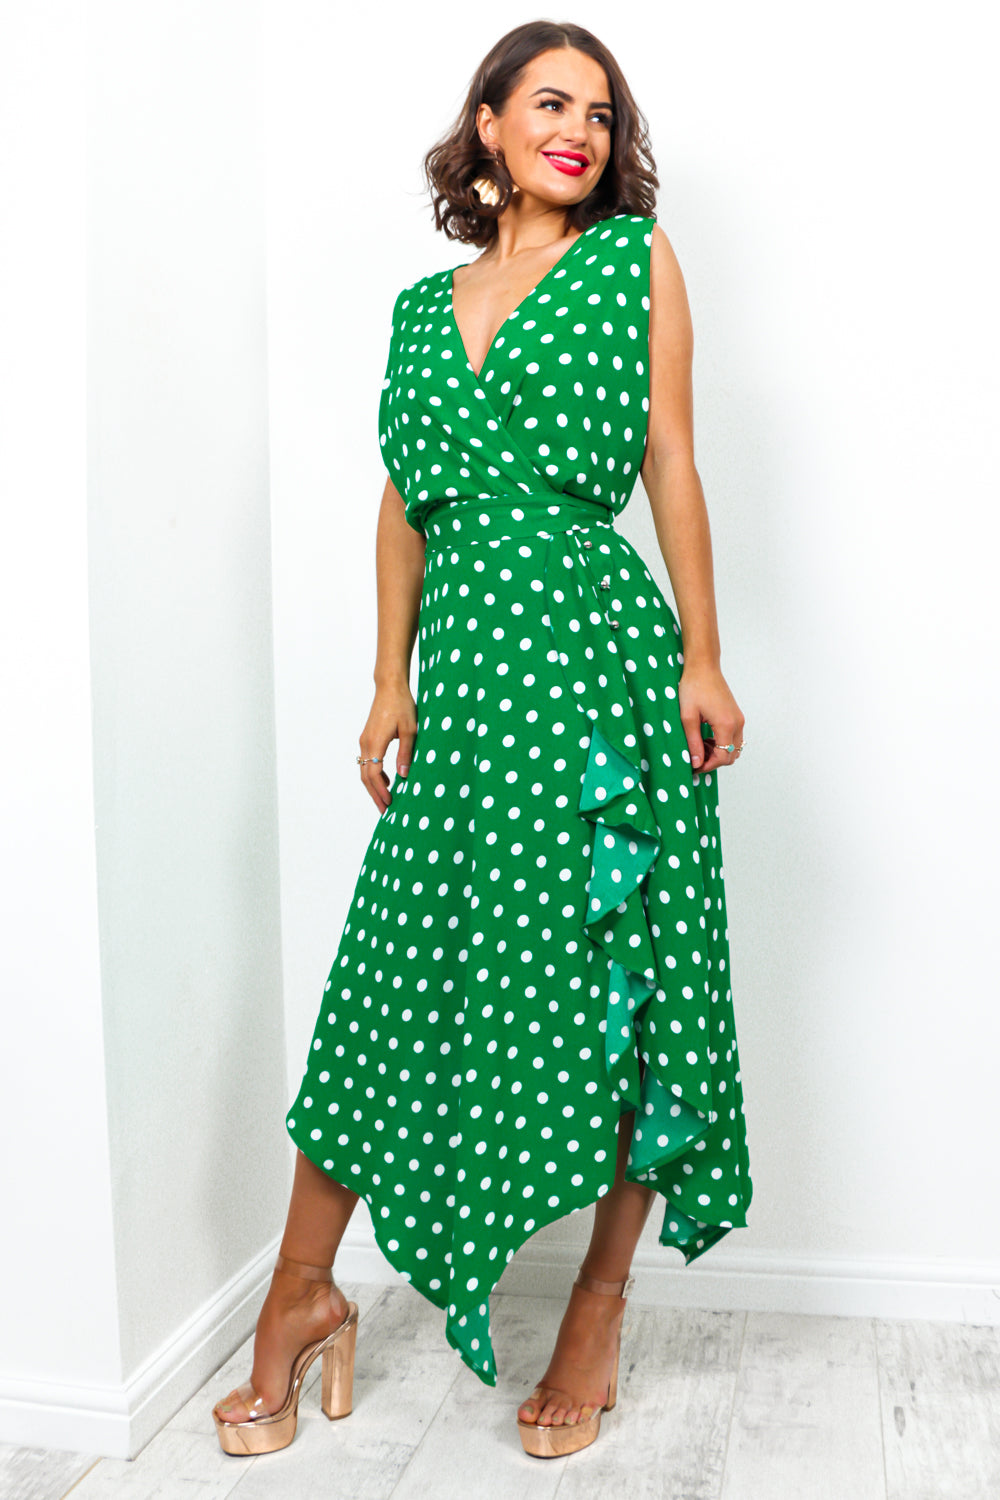 Deep In Love - Dress In GREEN/POLKA-DOT